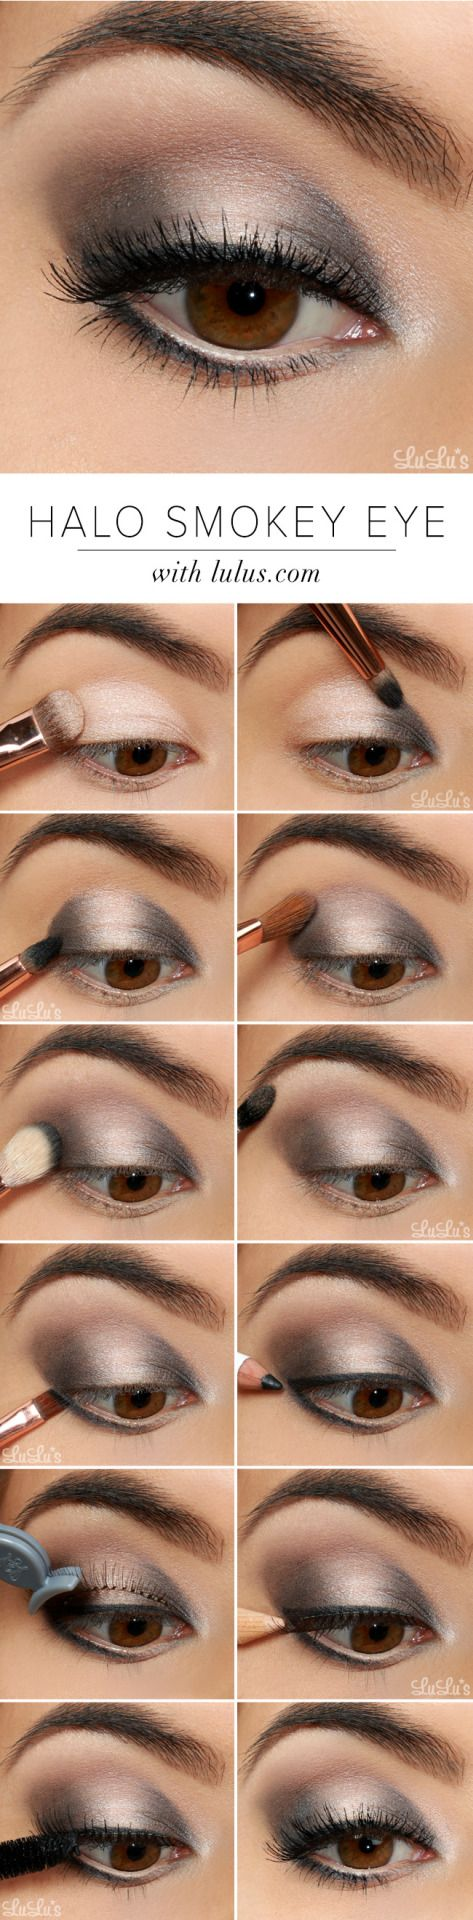 LuLu*s How-To: Halo Smokey Eye Shadow Tutorial